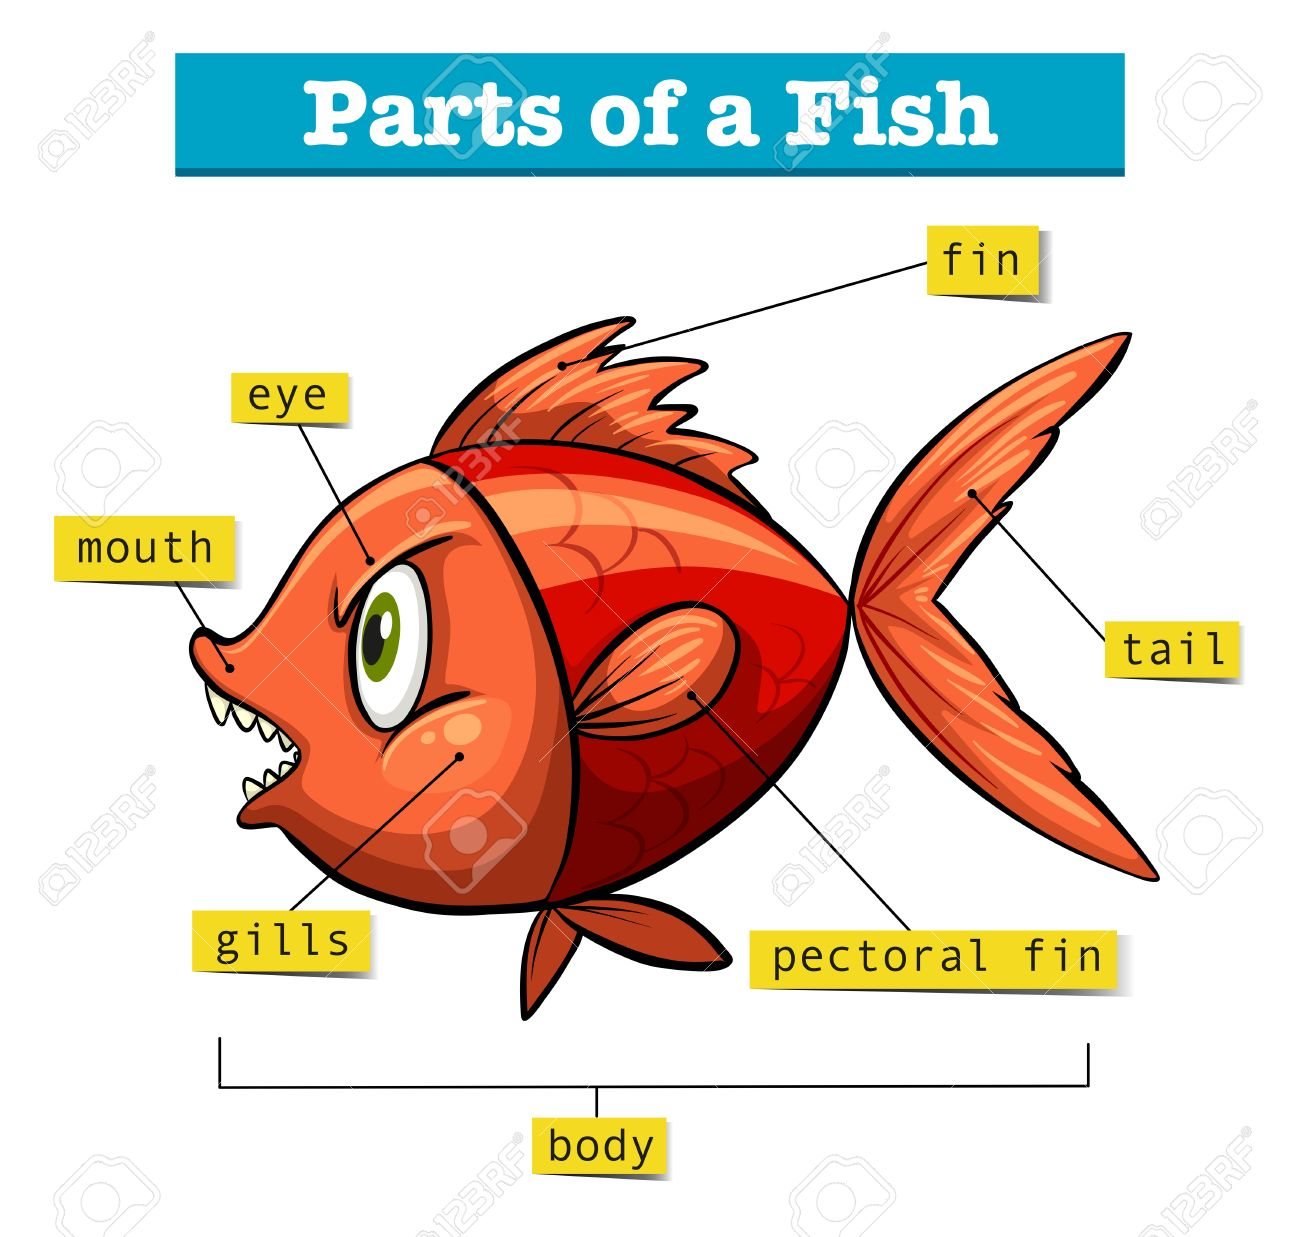 hight resolution of diagram showing parts of fish illustration stock vector 60629733